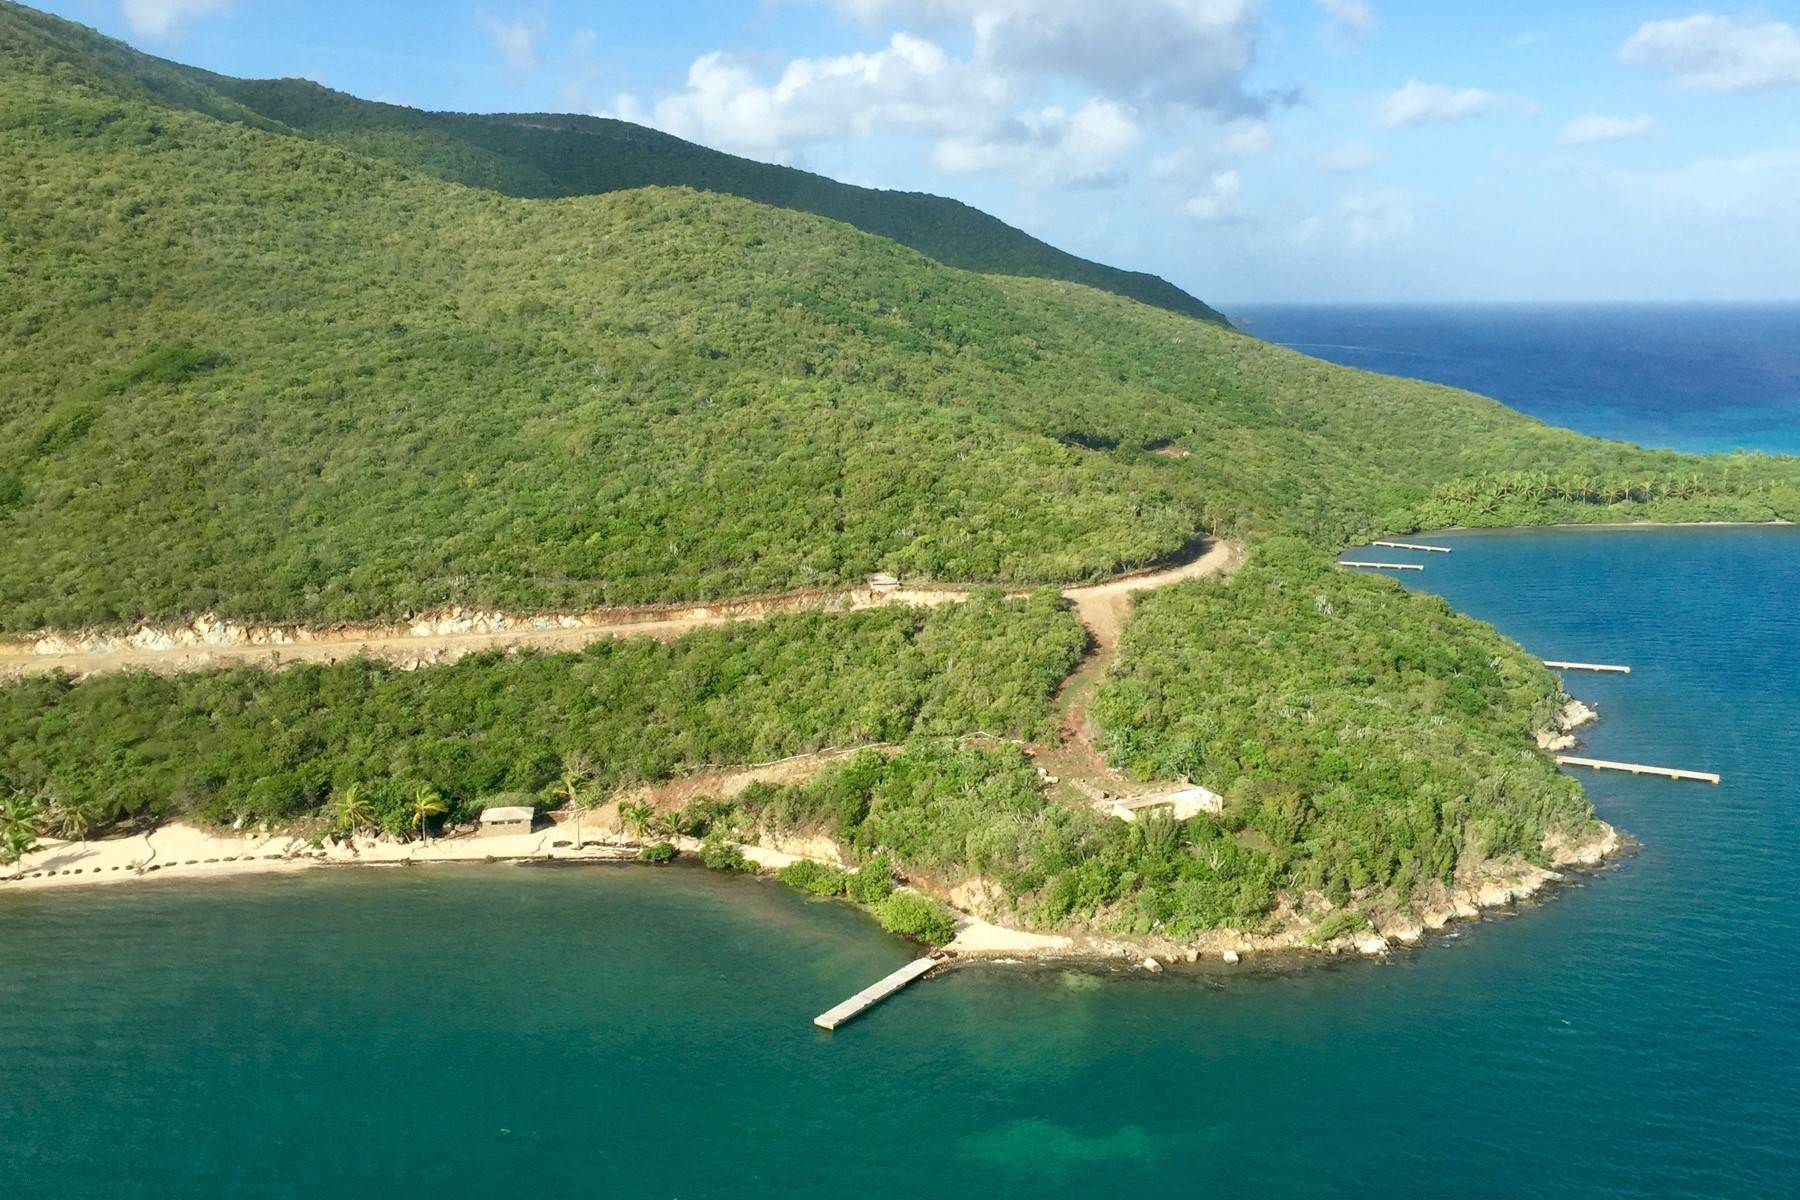 Terreno em Blunder Bay, Virgin Gorda Ilhas Virgens Britânicas